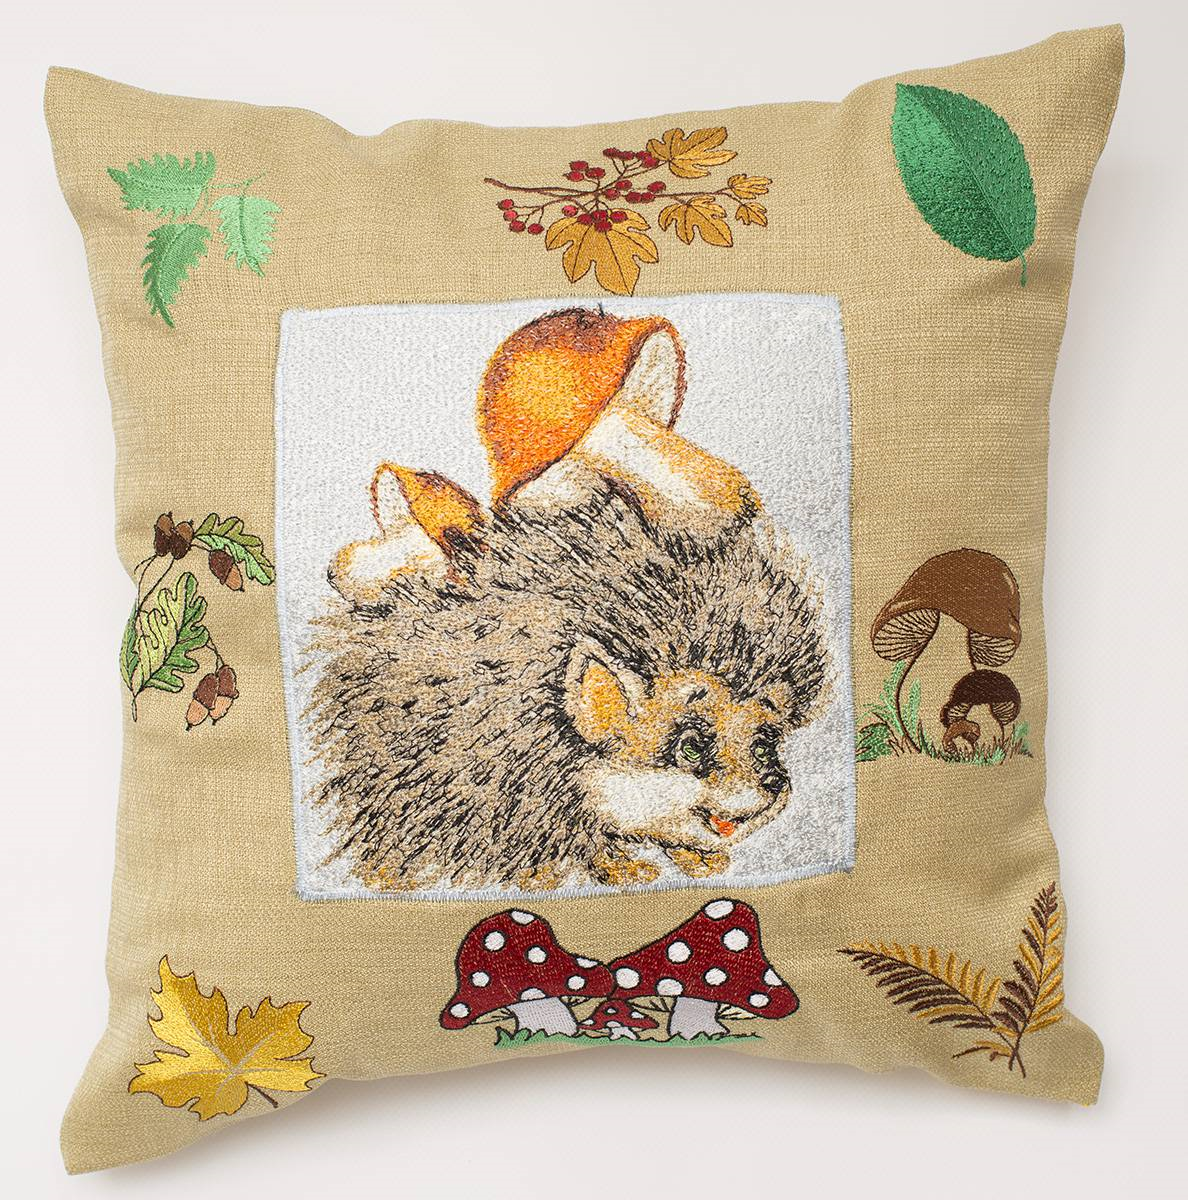 Embroidered cushion with hedgehog photo stitch design